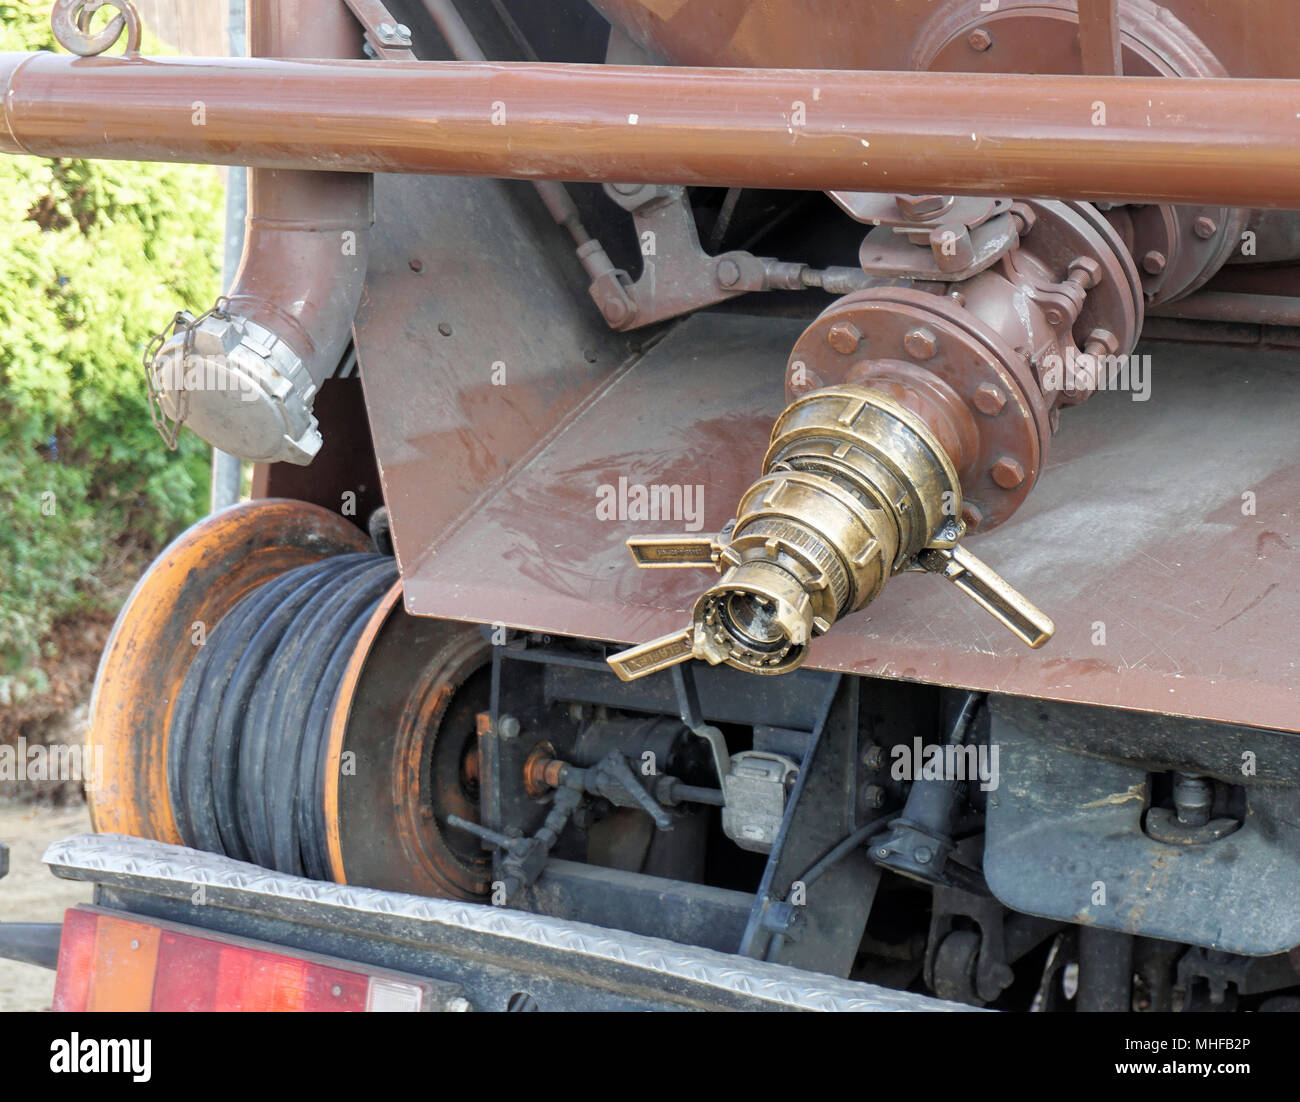 Wolfsburg, Lower Saxony, Germany, April 19, 2018: Connection for the hose of a suction cart and water cart for pumping water out of an excavation pit, - Stock Image